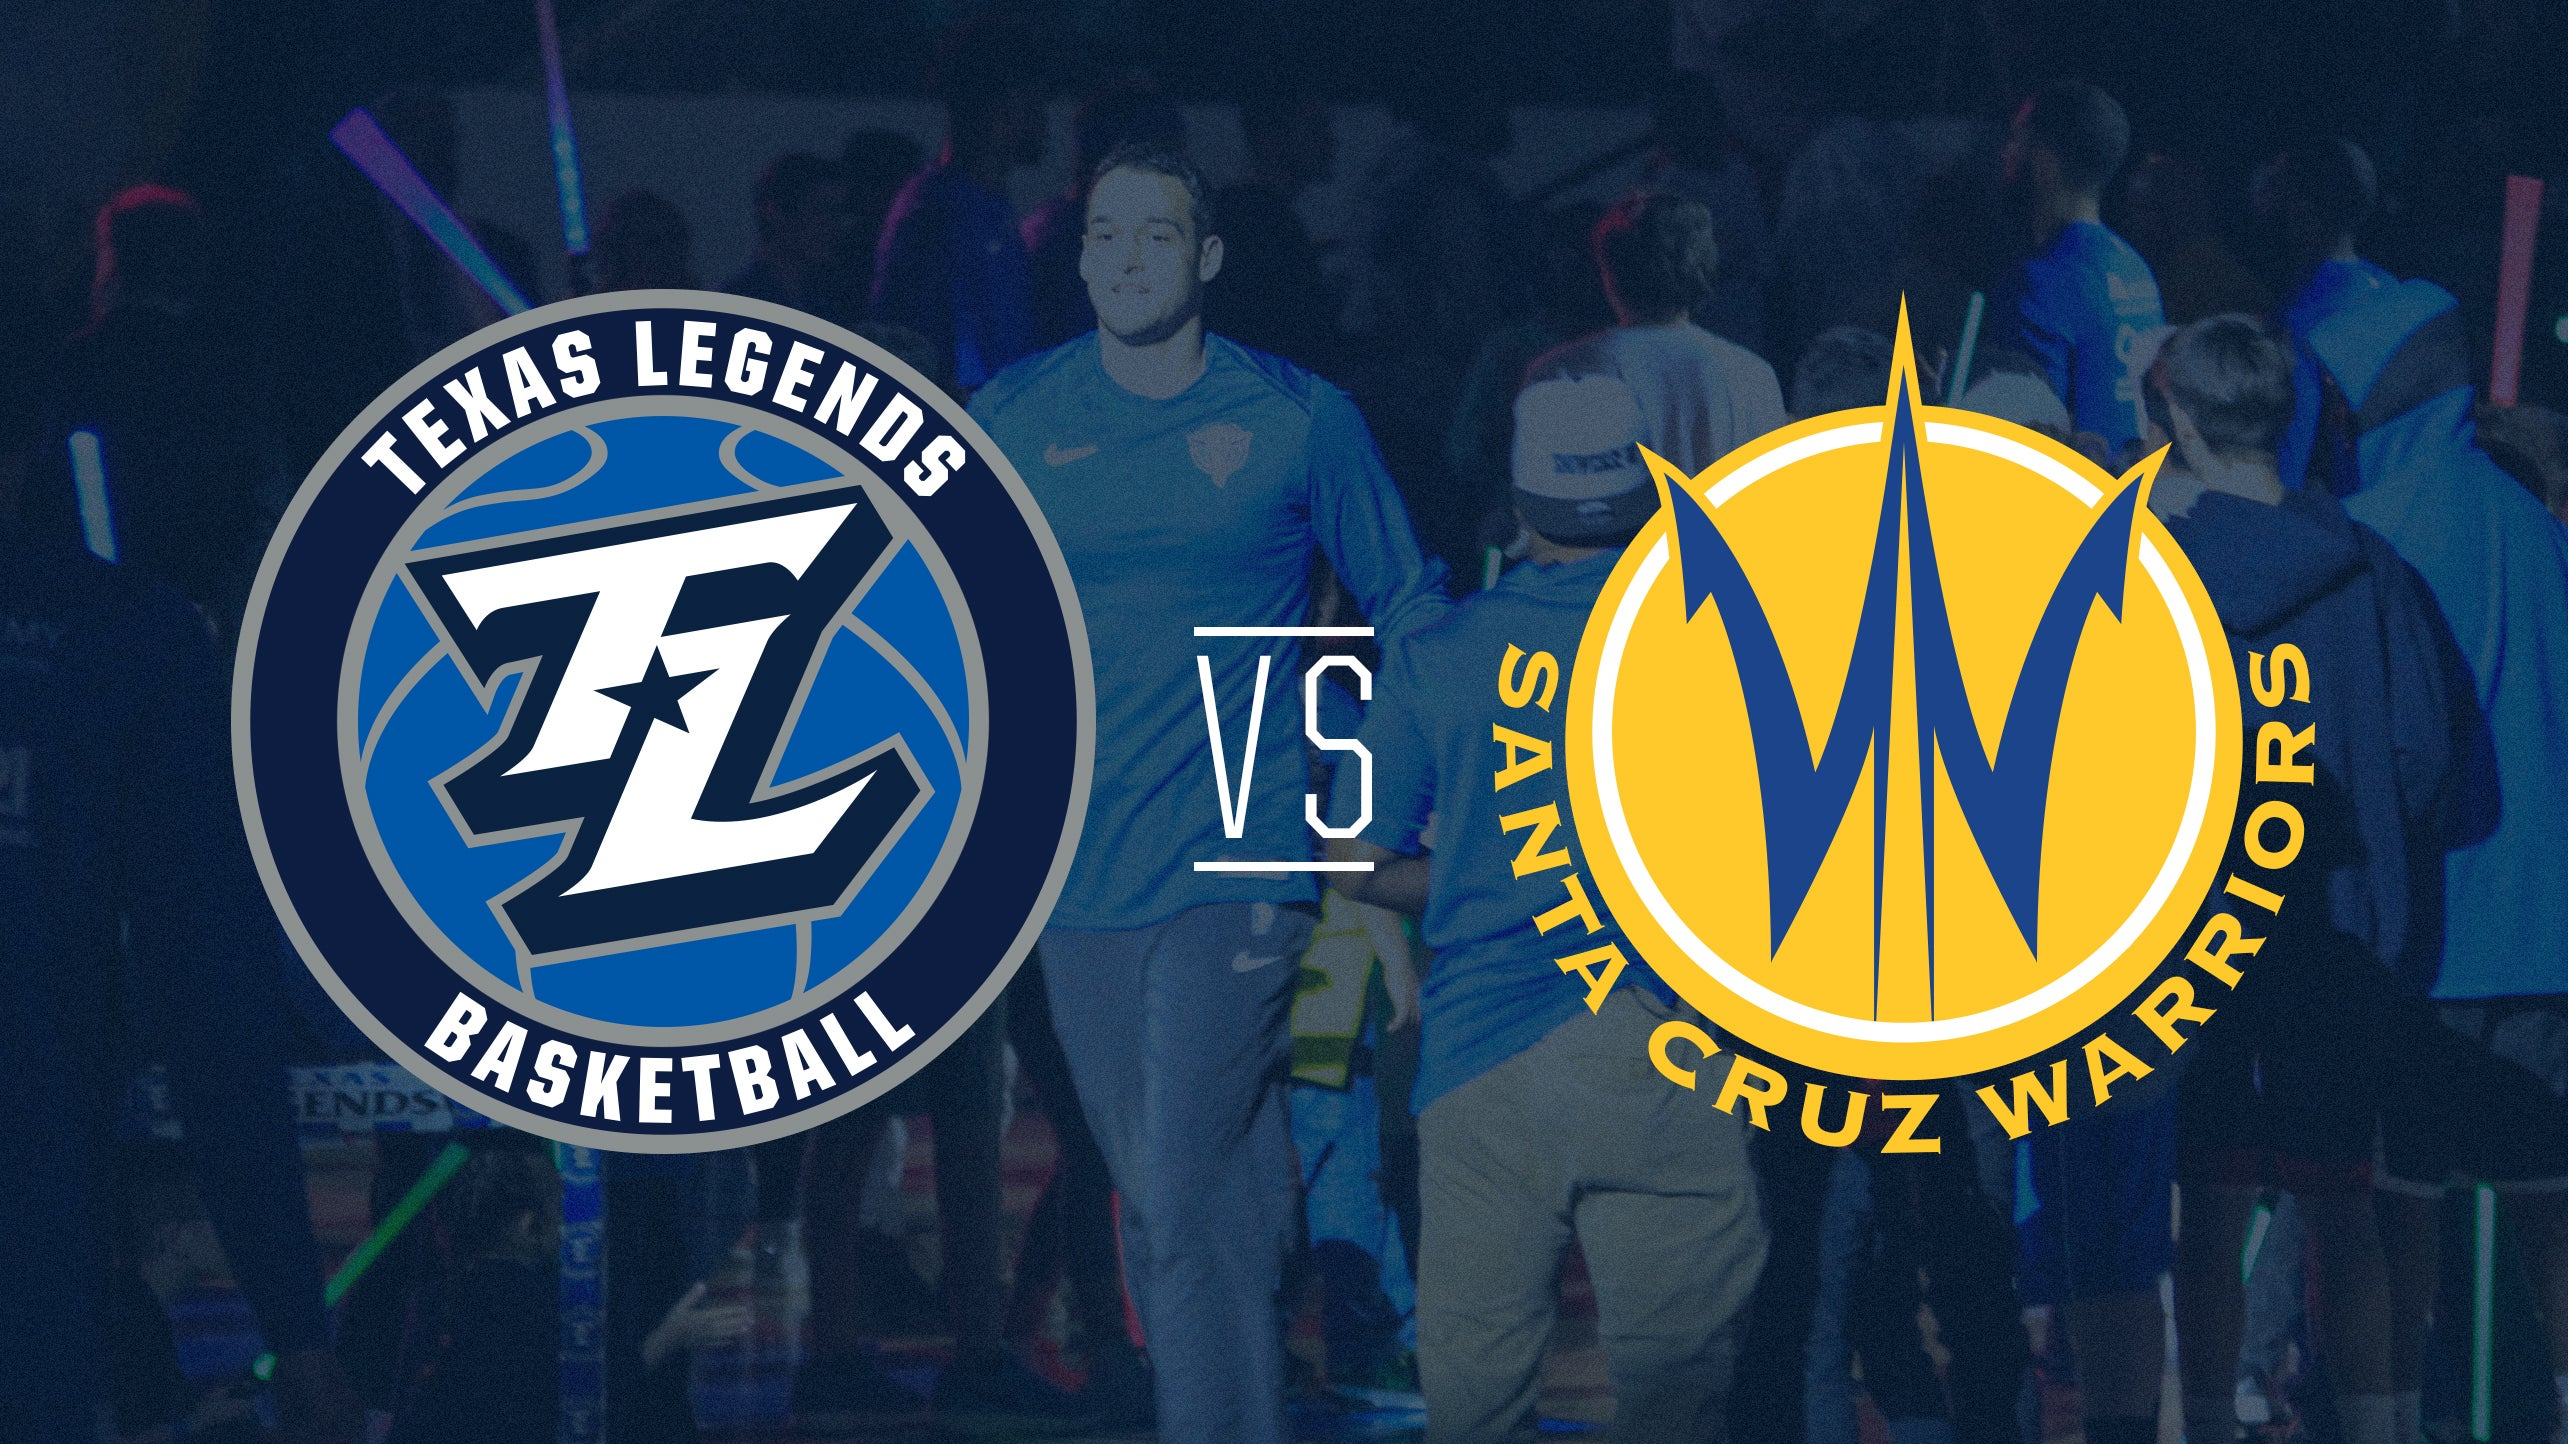 Texas Legends vs Santa Cruz Warriors